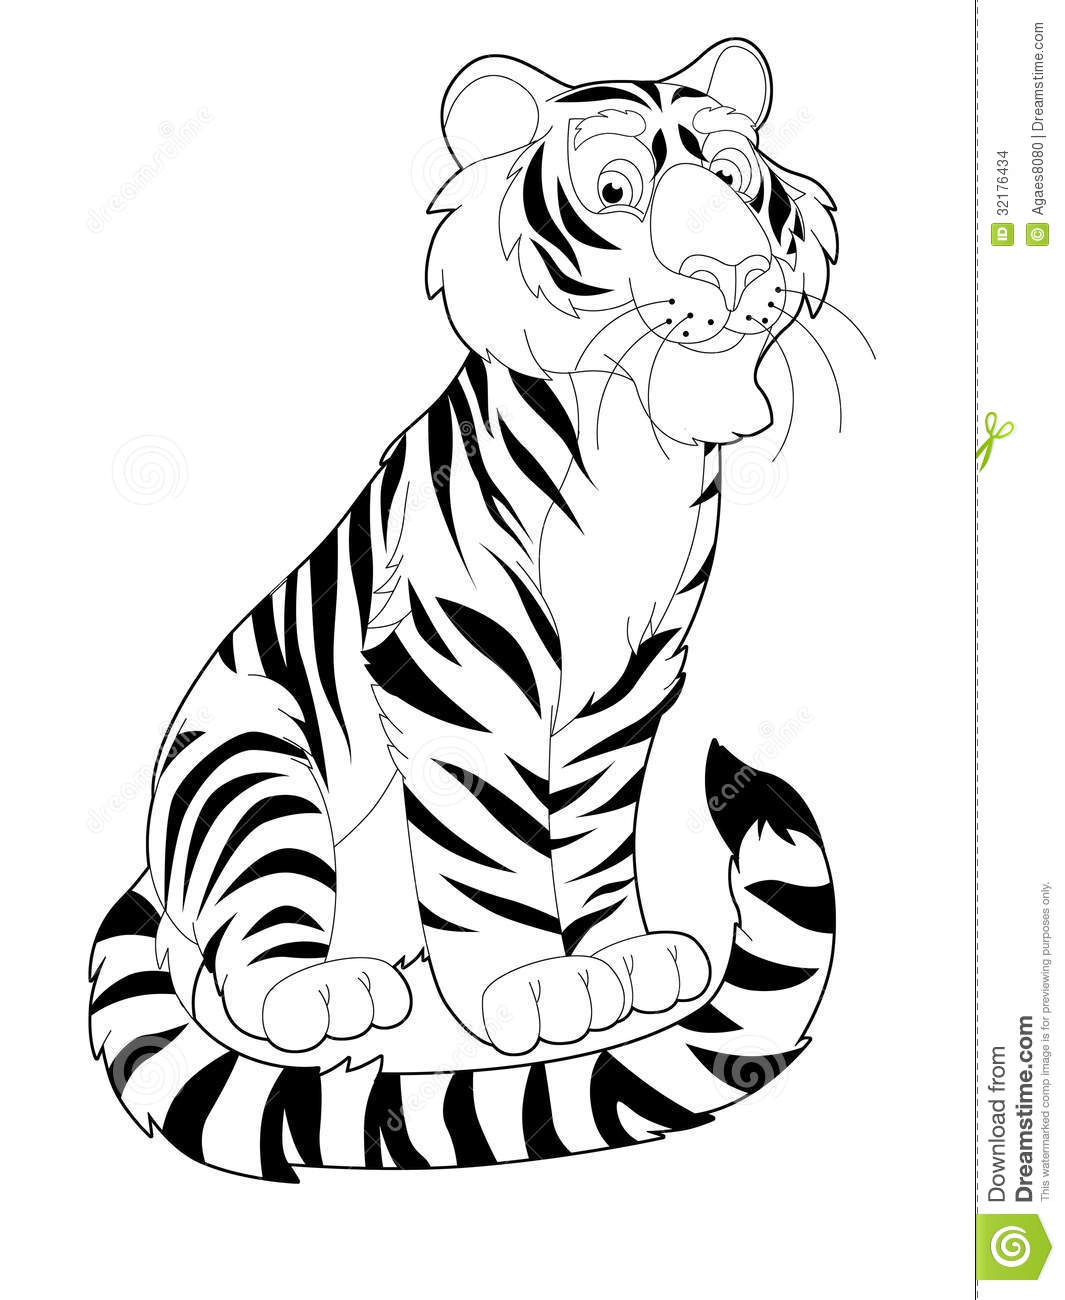 free kids safari coloring pages - photo#35